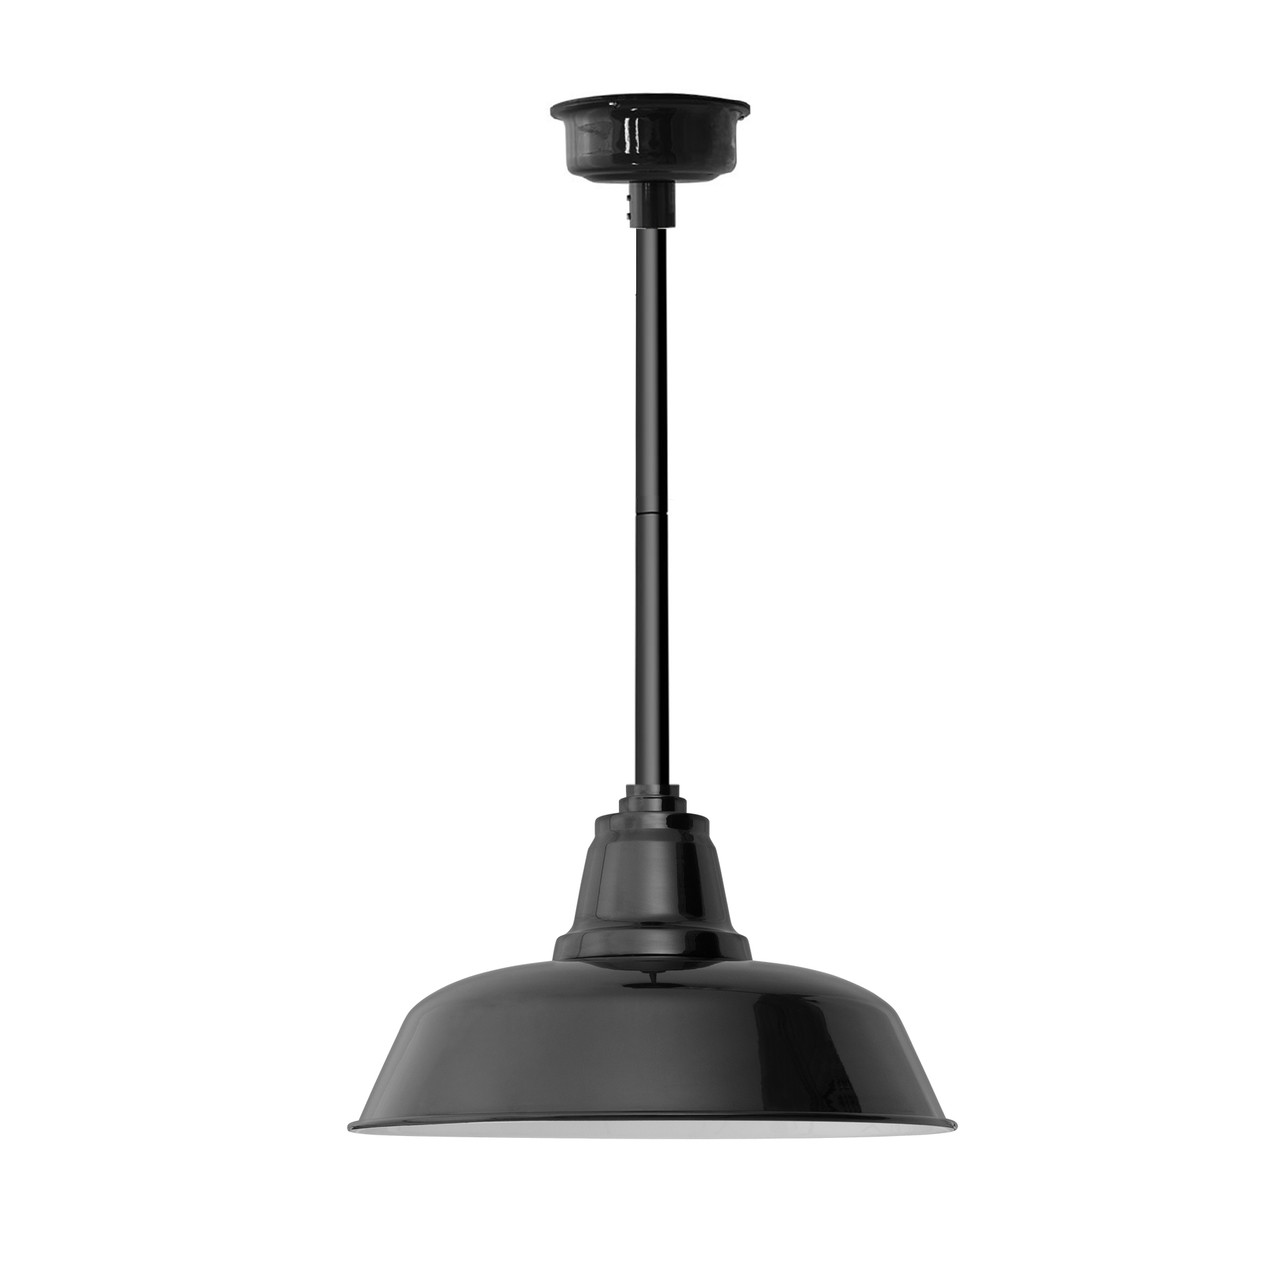 14 Goodyear Led Pendant Light In Black With Black Downrod Cocoweb Quality Led Lighting Specialists